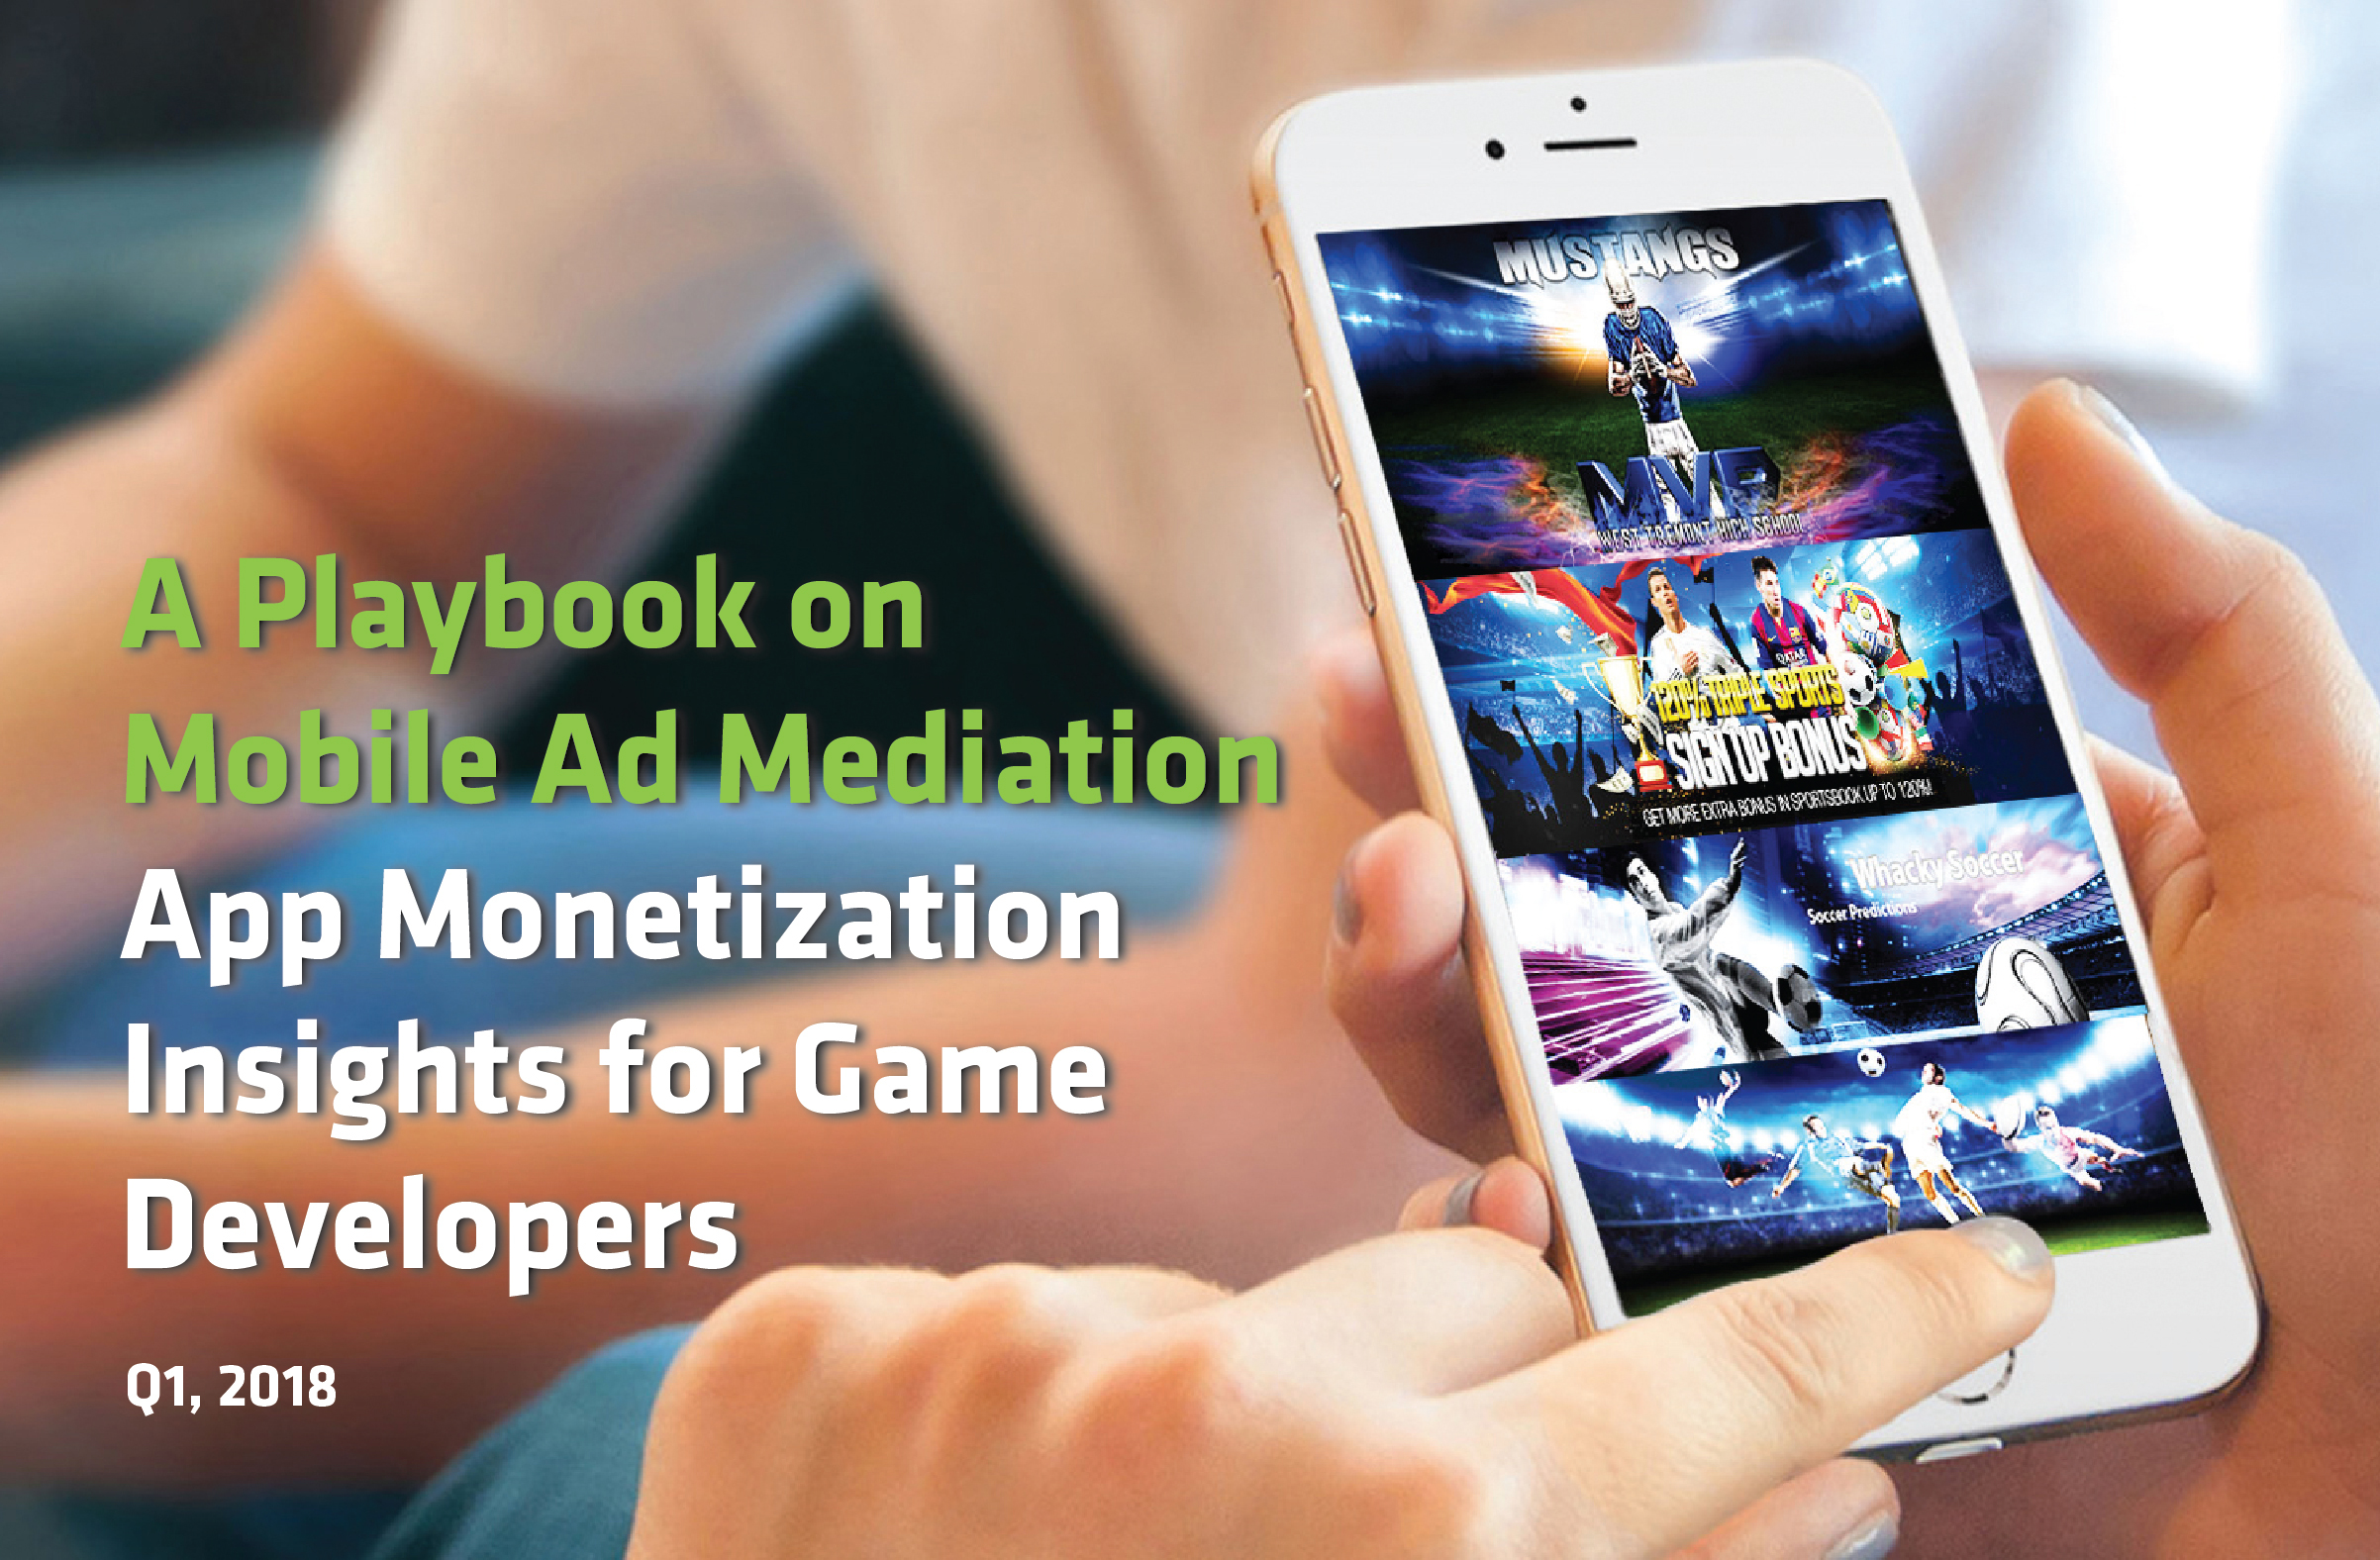 Ad Mediation Playbook | App Monetization Insights for Game Developers